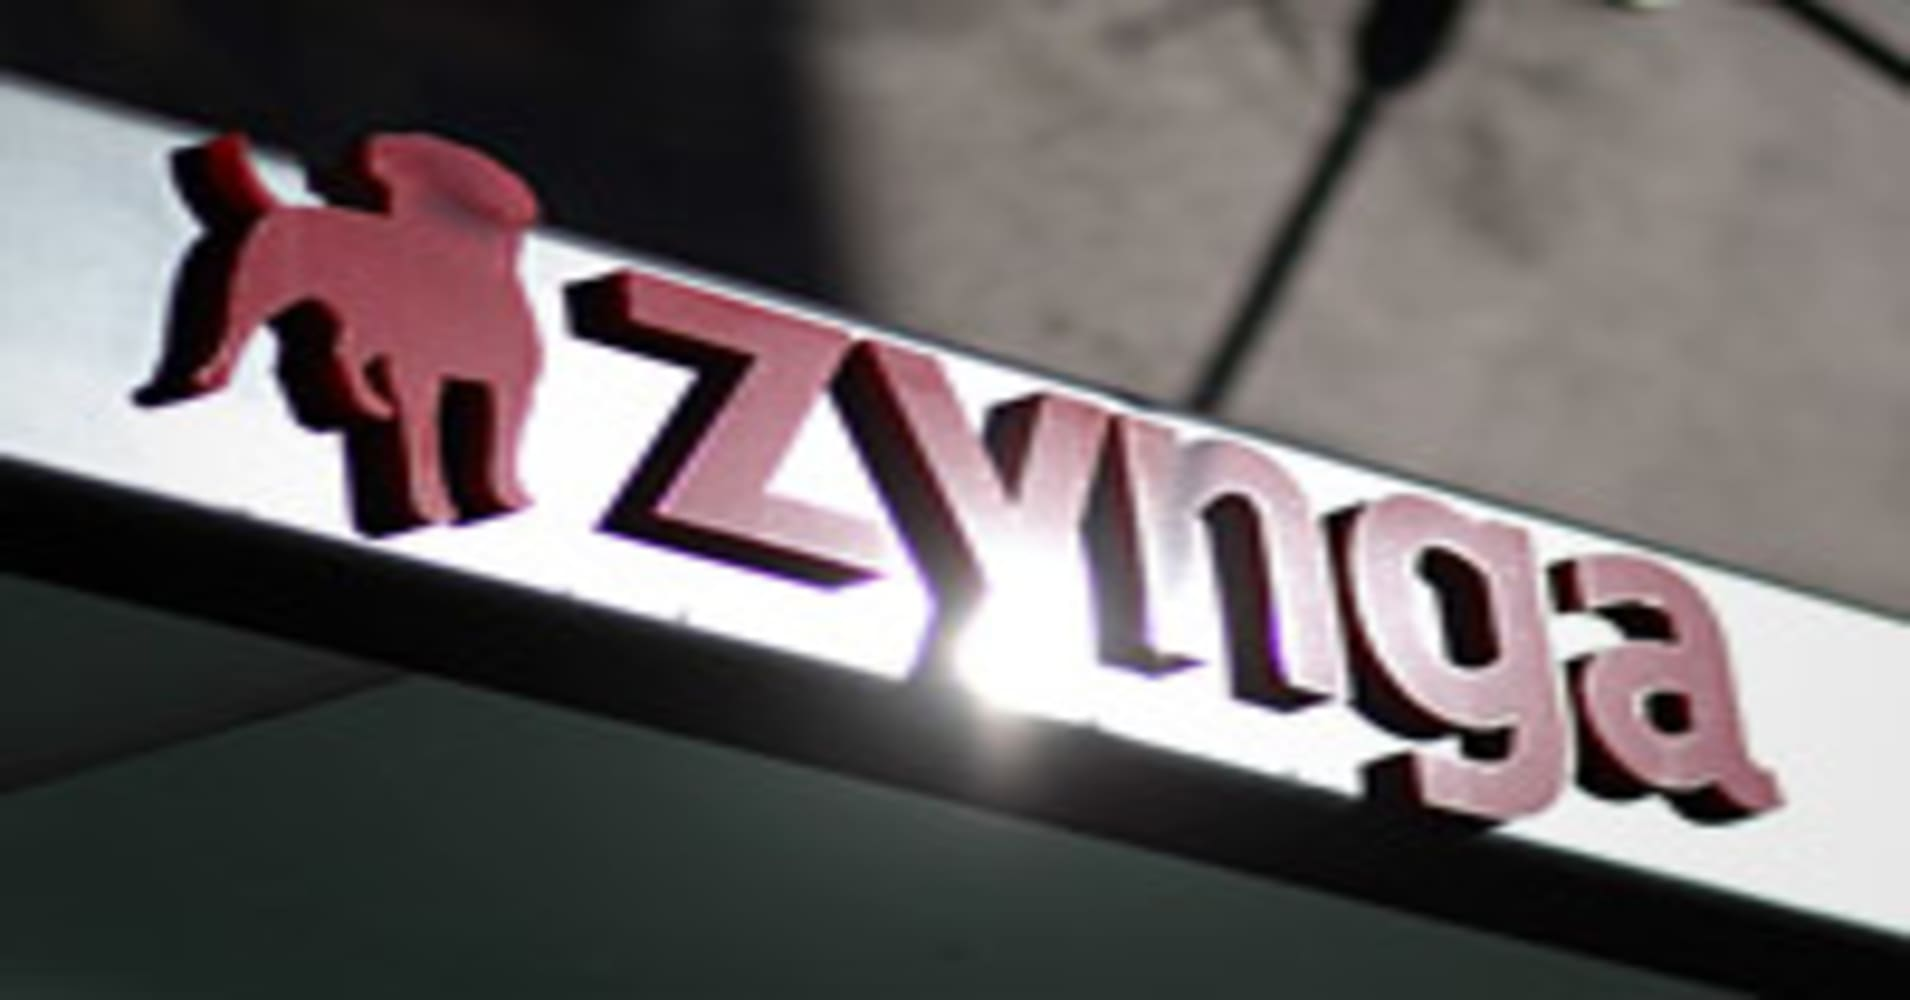 Zynga Files Ipo To Raise 1 Billion